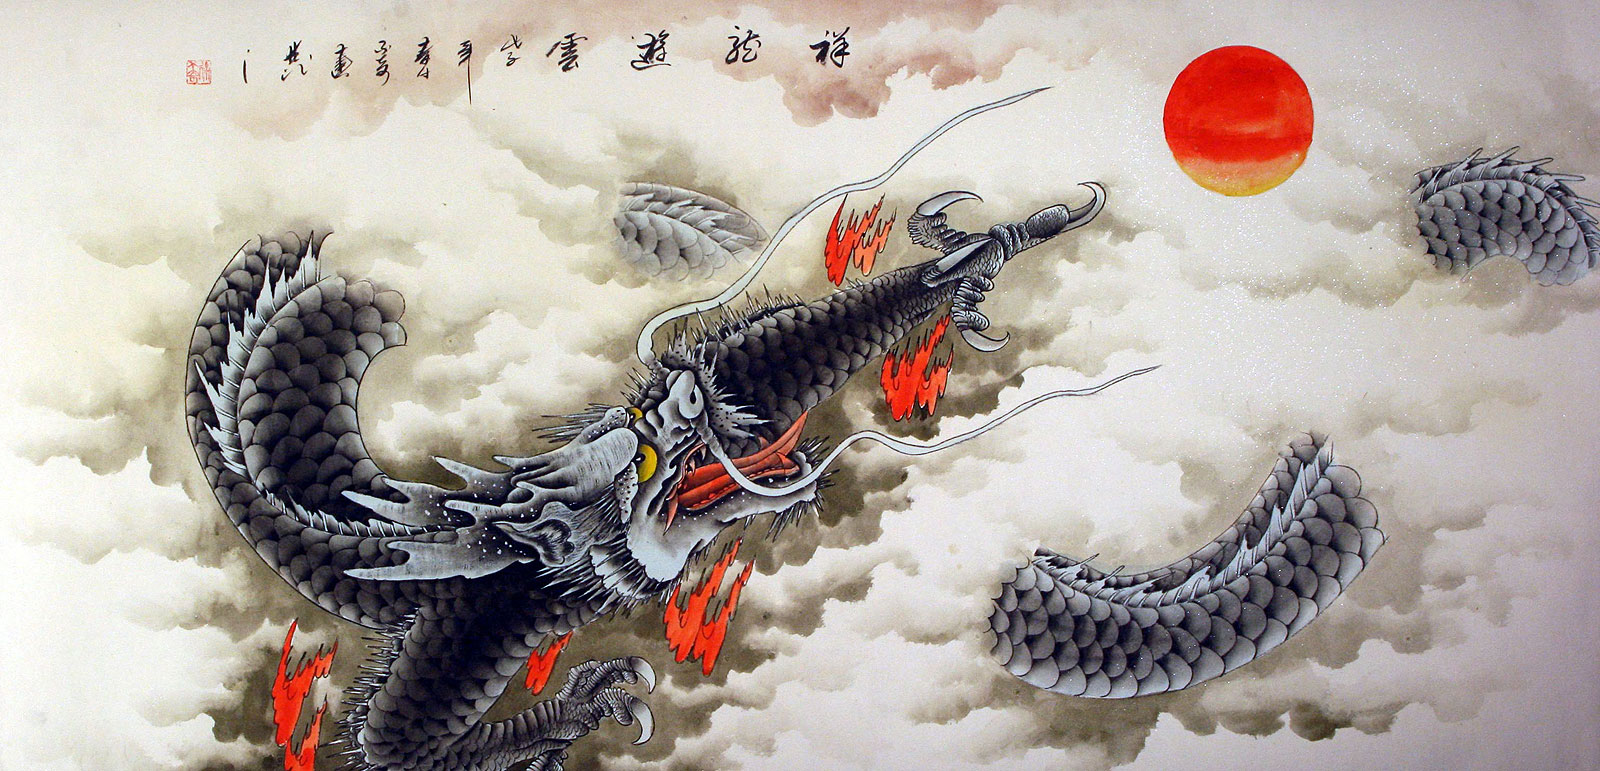 Huge Dragon Painting - Tigers & Dragons Paintings and Wall ...